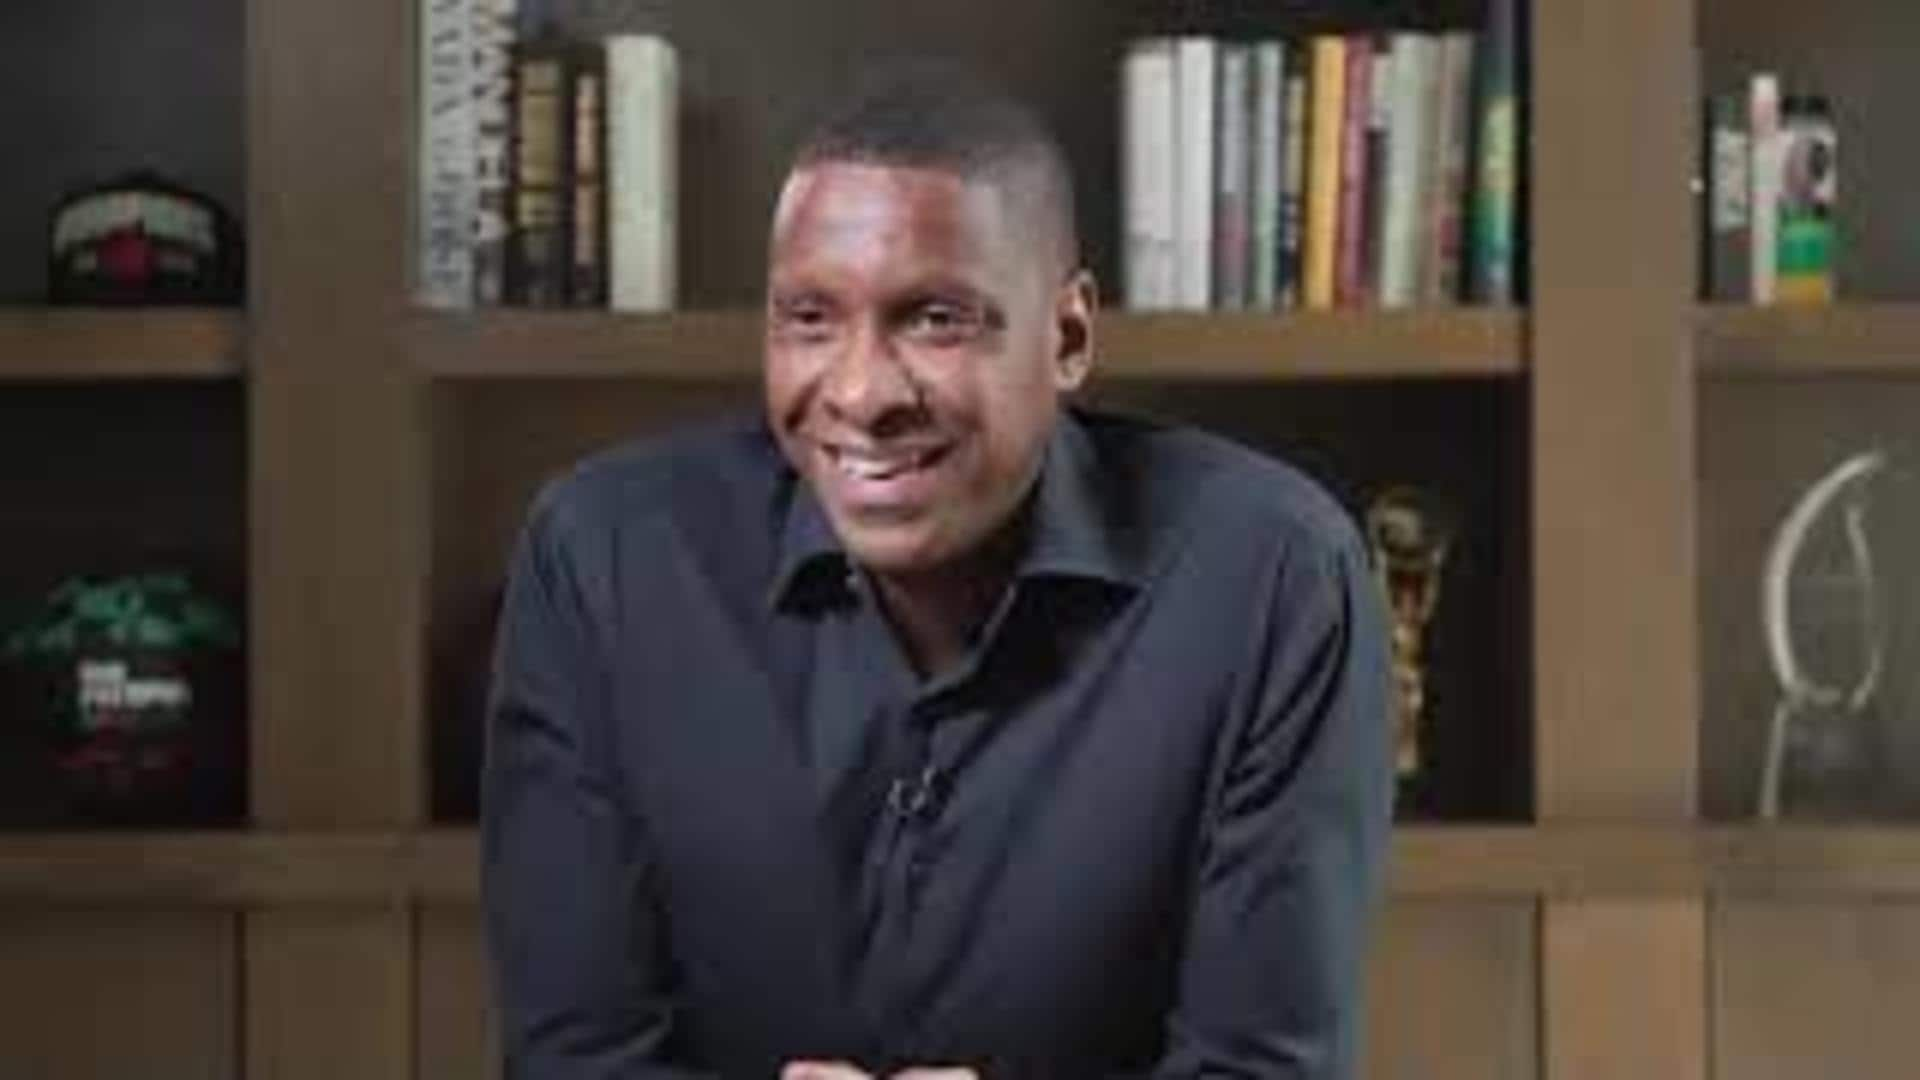 End of Season: Masai Ujiri - September 17, 2020